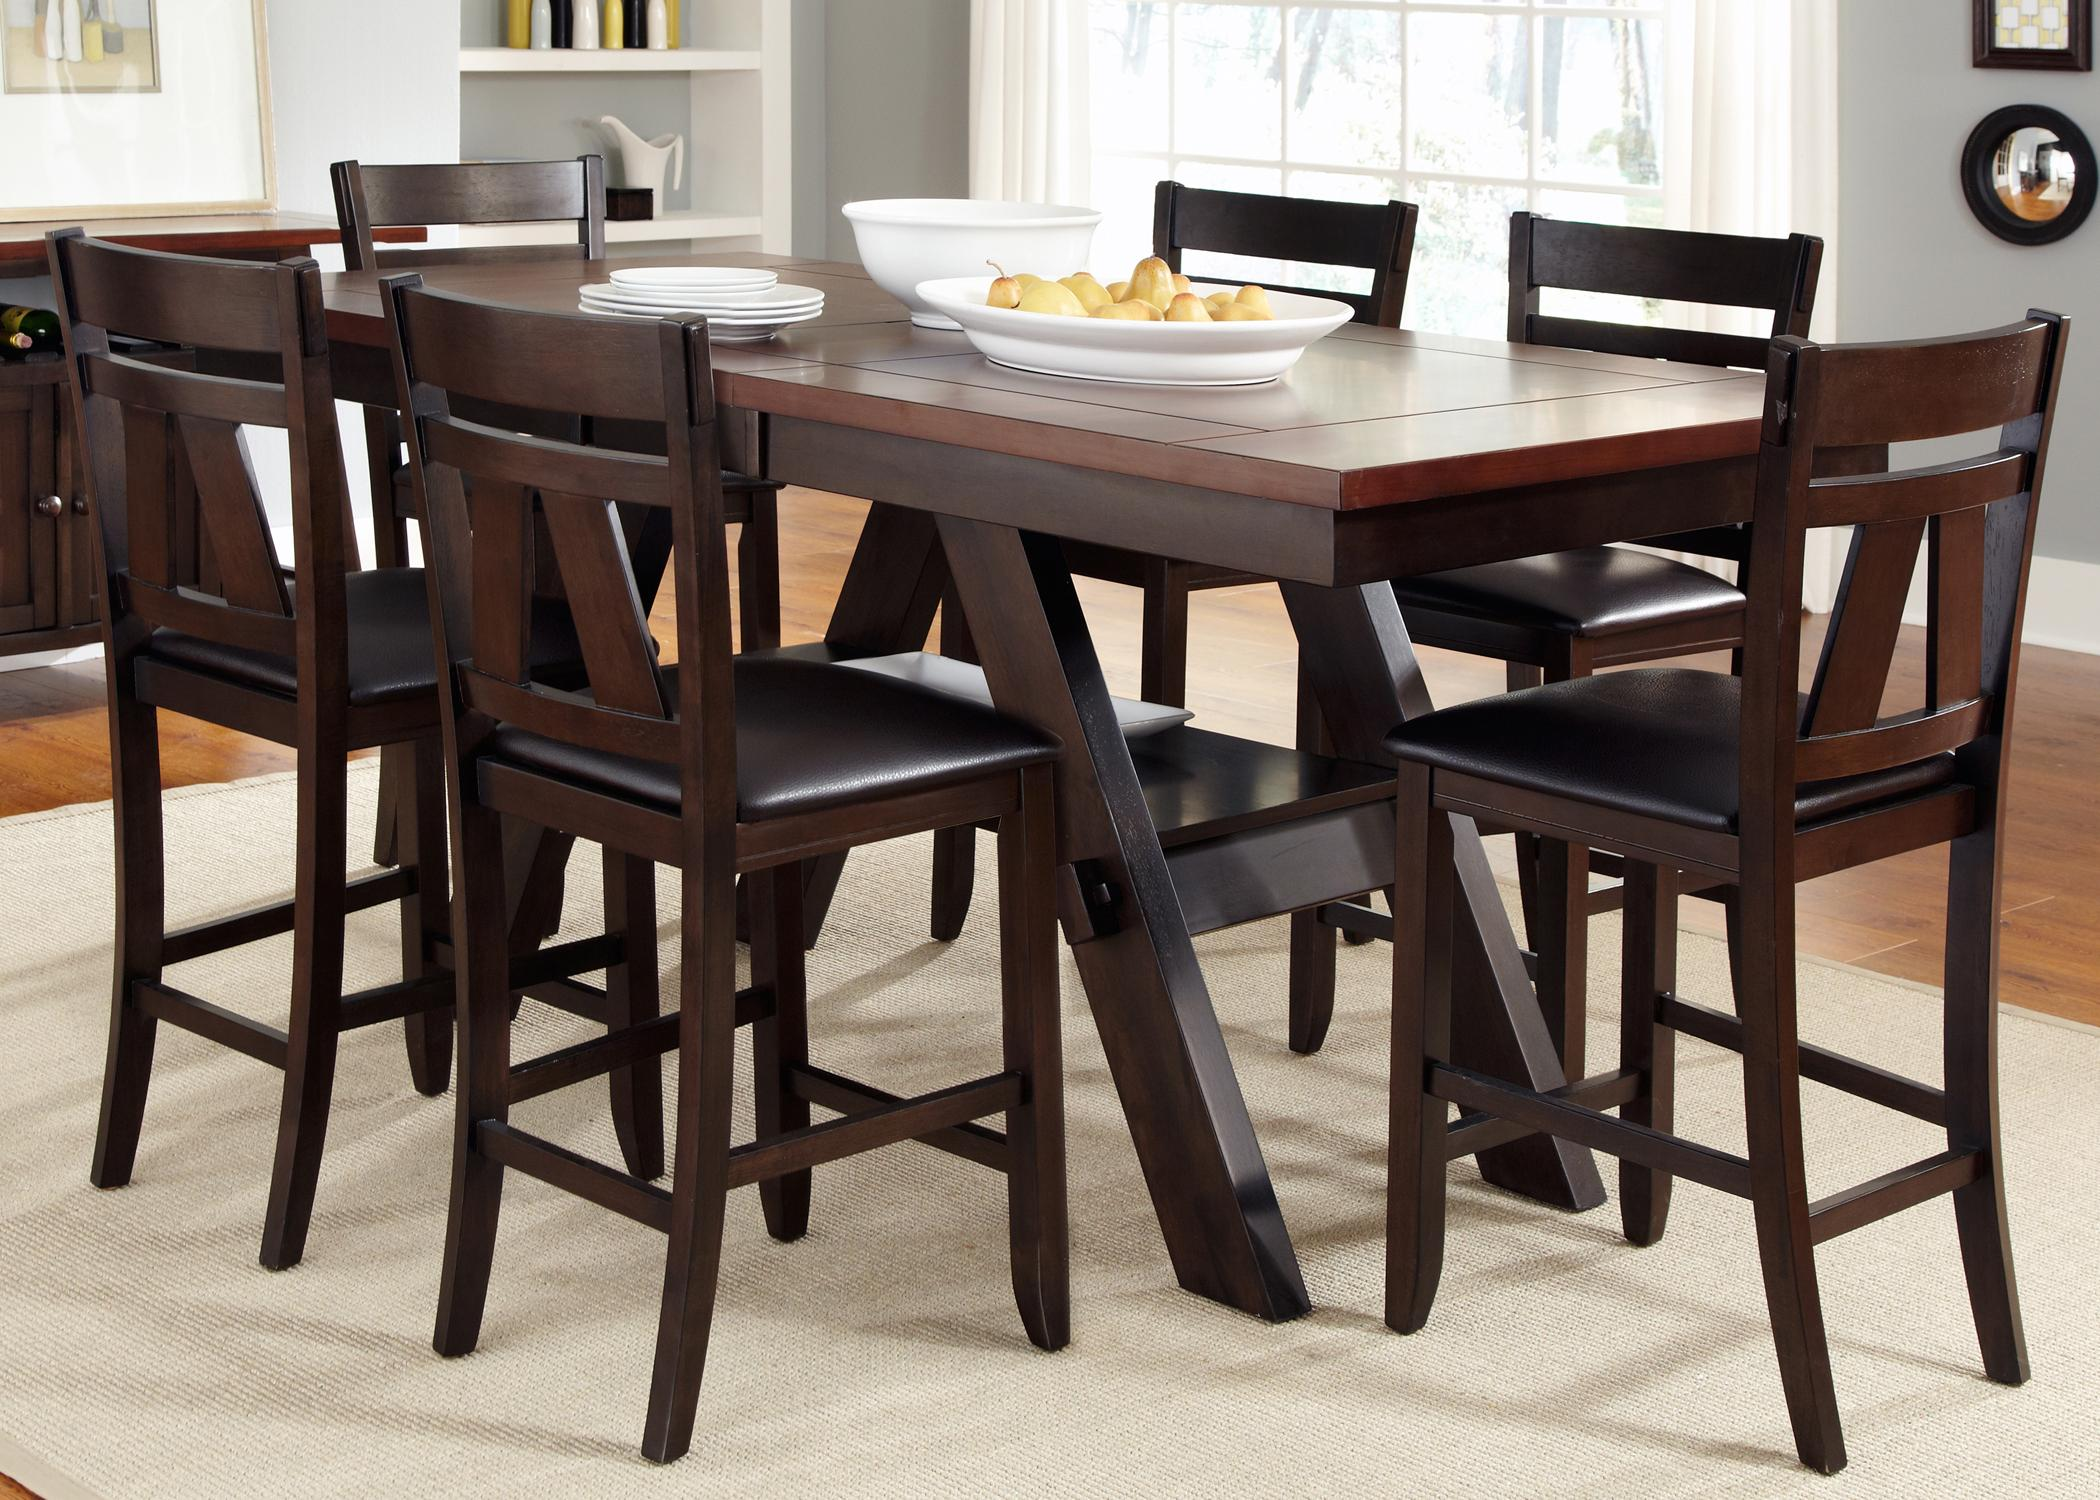 Lawson Gathering Table with Counter Height Chairs by Liberty Furniture at Darvin Furniture